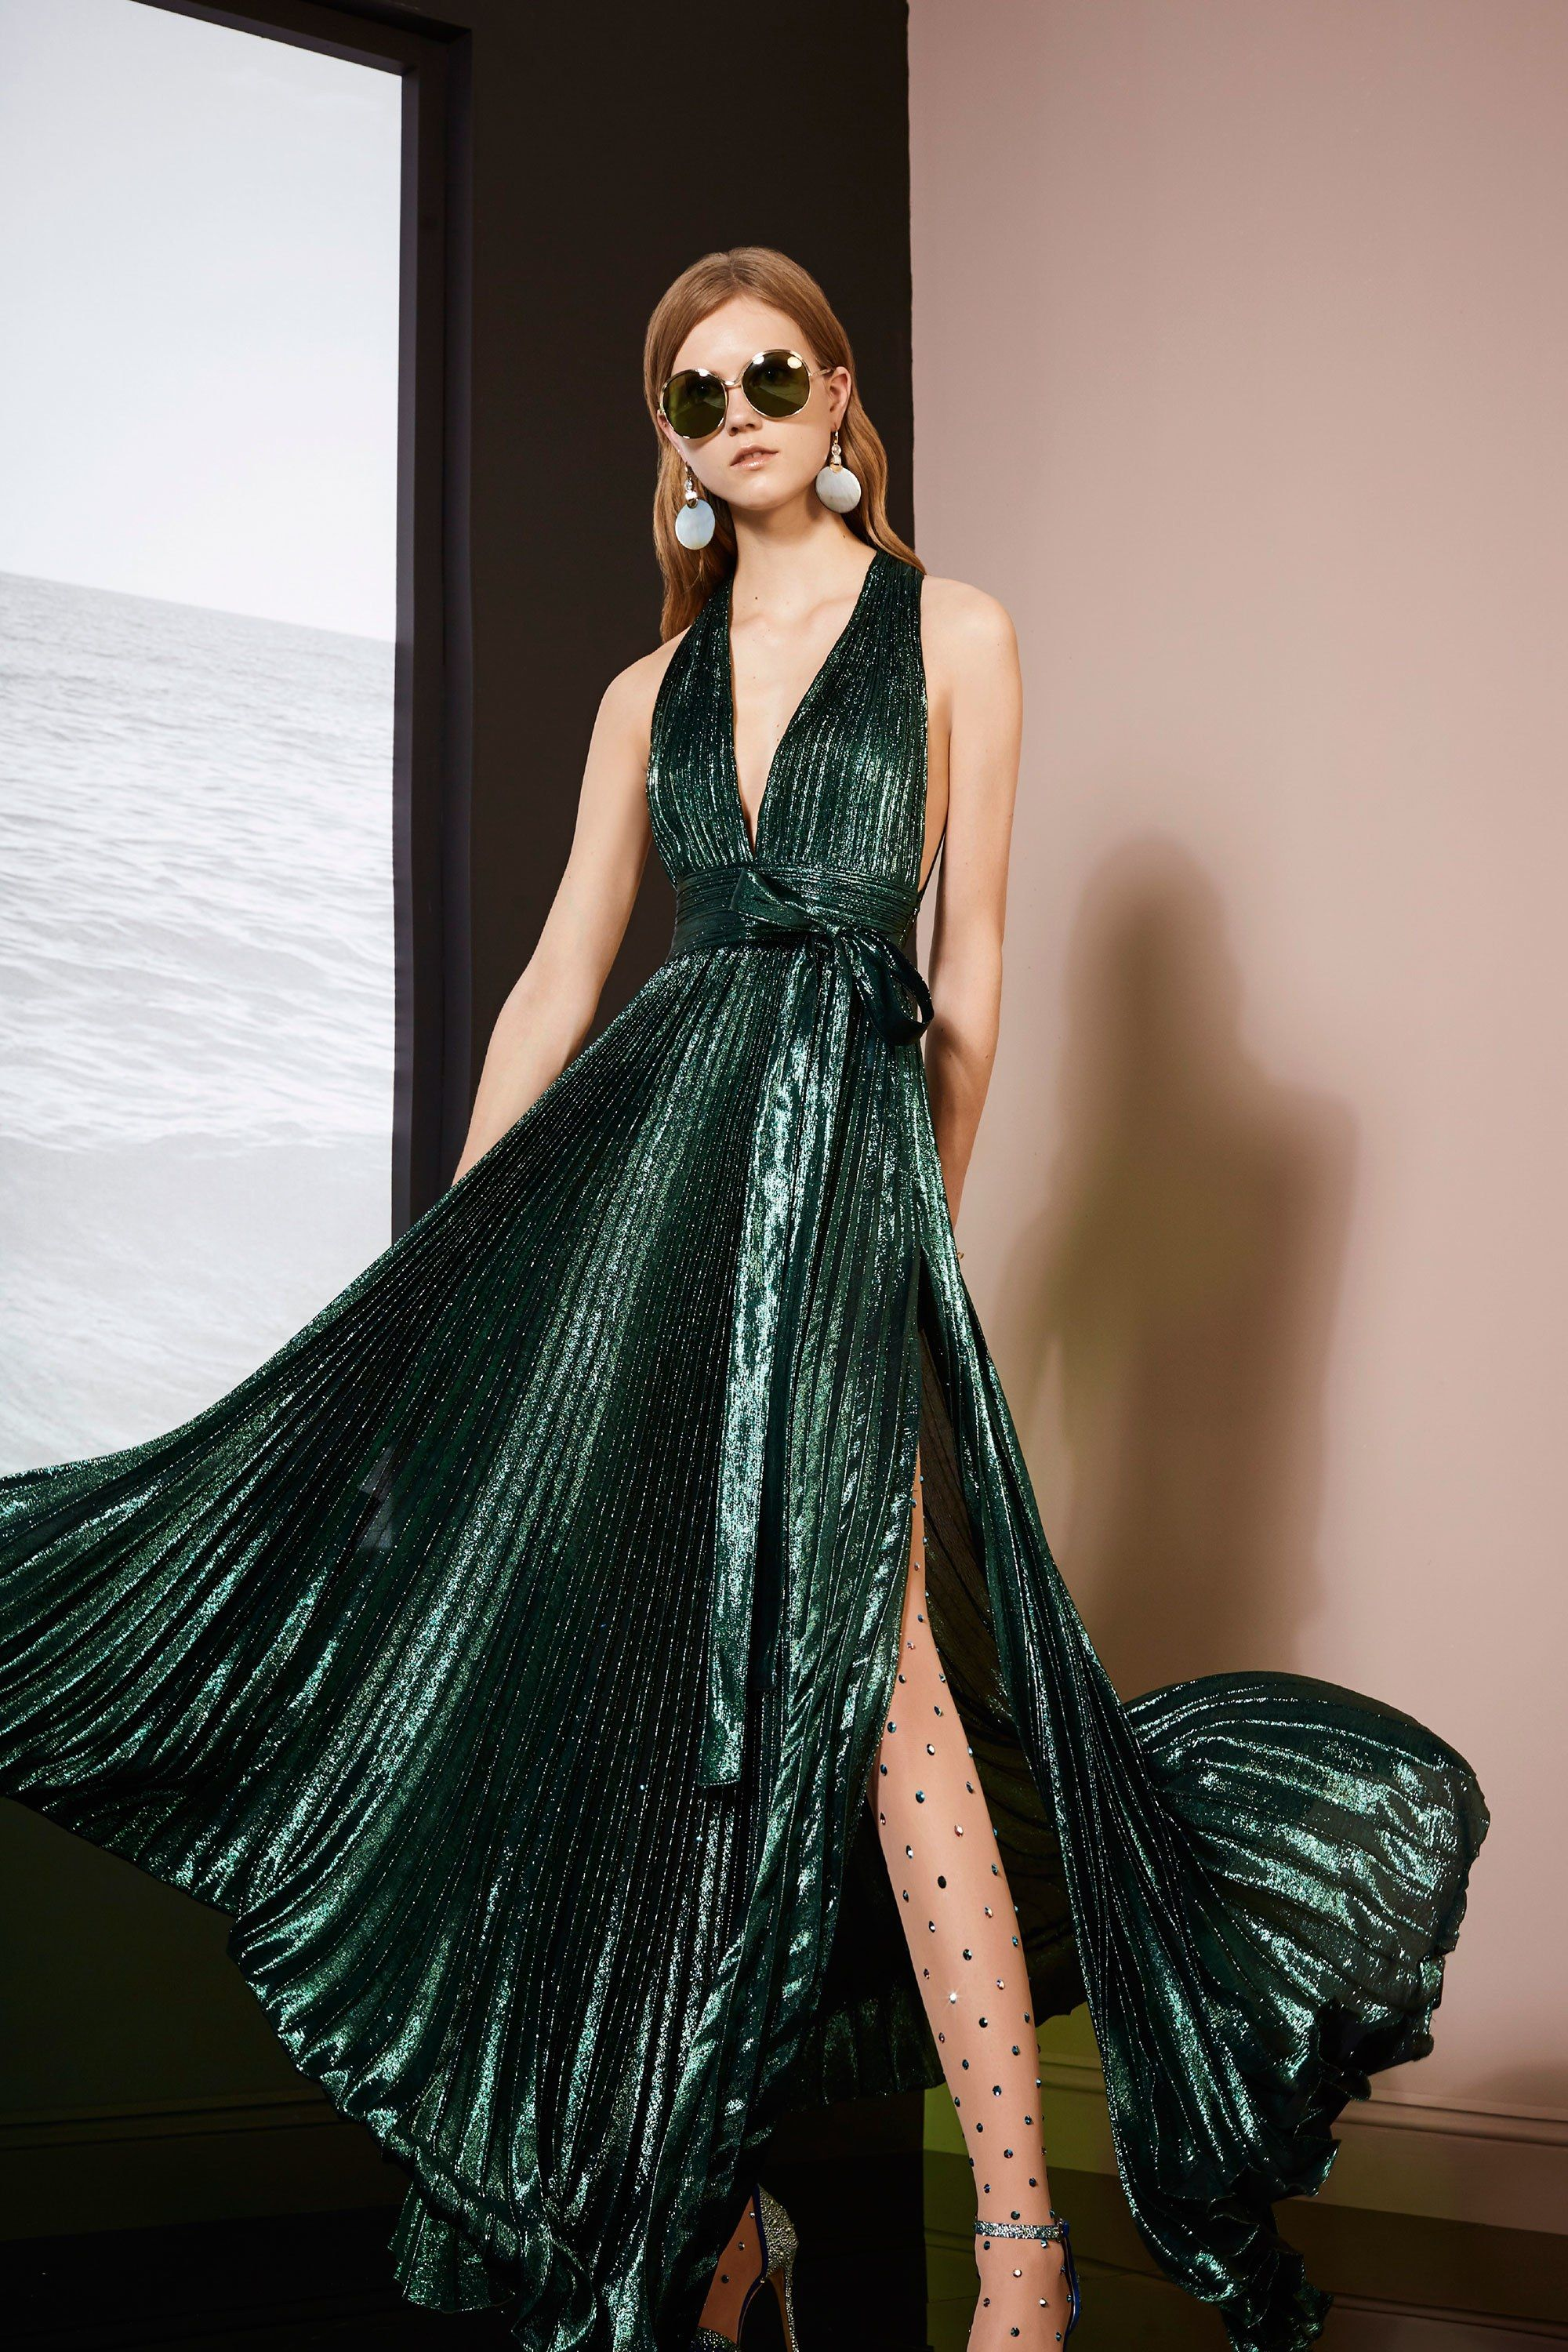 Elie Saab Resort 2018  Stunning metallic green gown with intricate knife  pleats! I love the modern take on Marilyn Monroe s iconic look! 52e6d1671